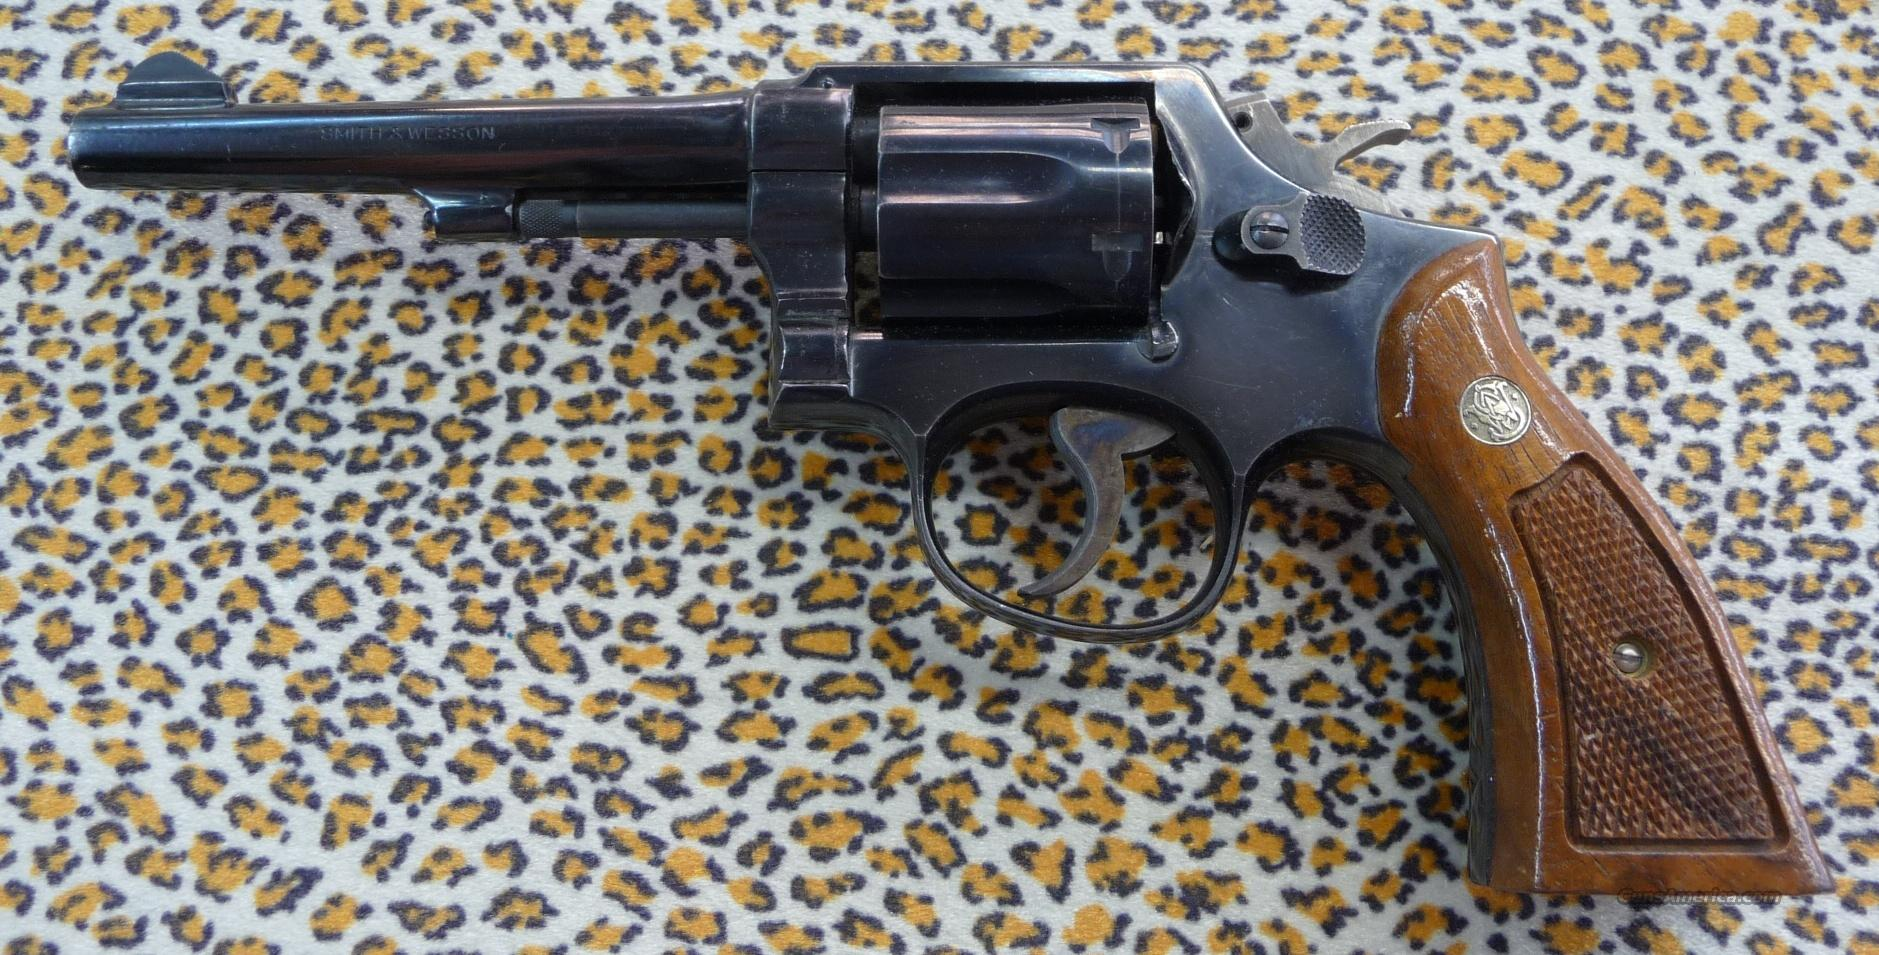 SMITH & WESSON 10-5 .38 SPECIAL  Guns > Pistols > Smith & Wesson Revolvers > Model 10